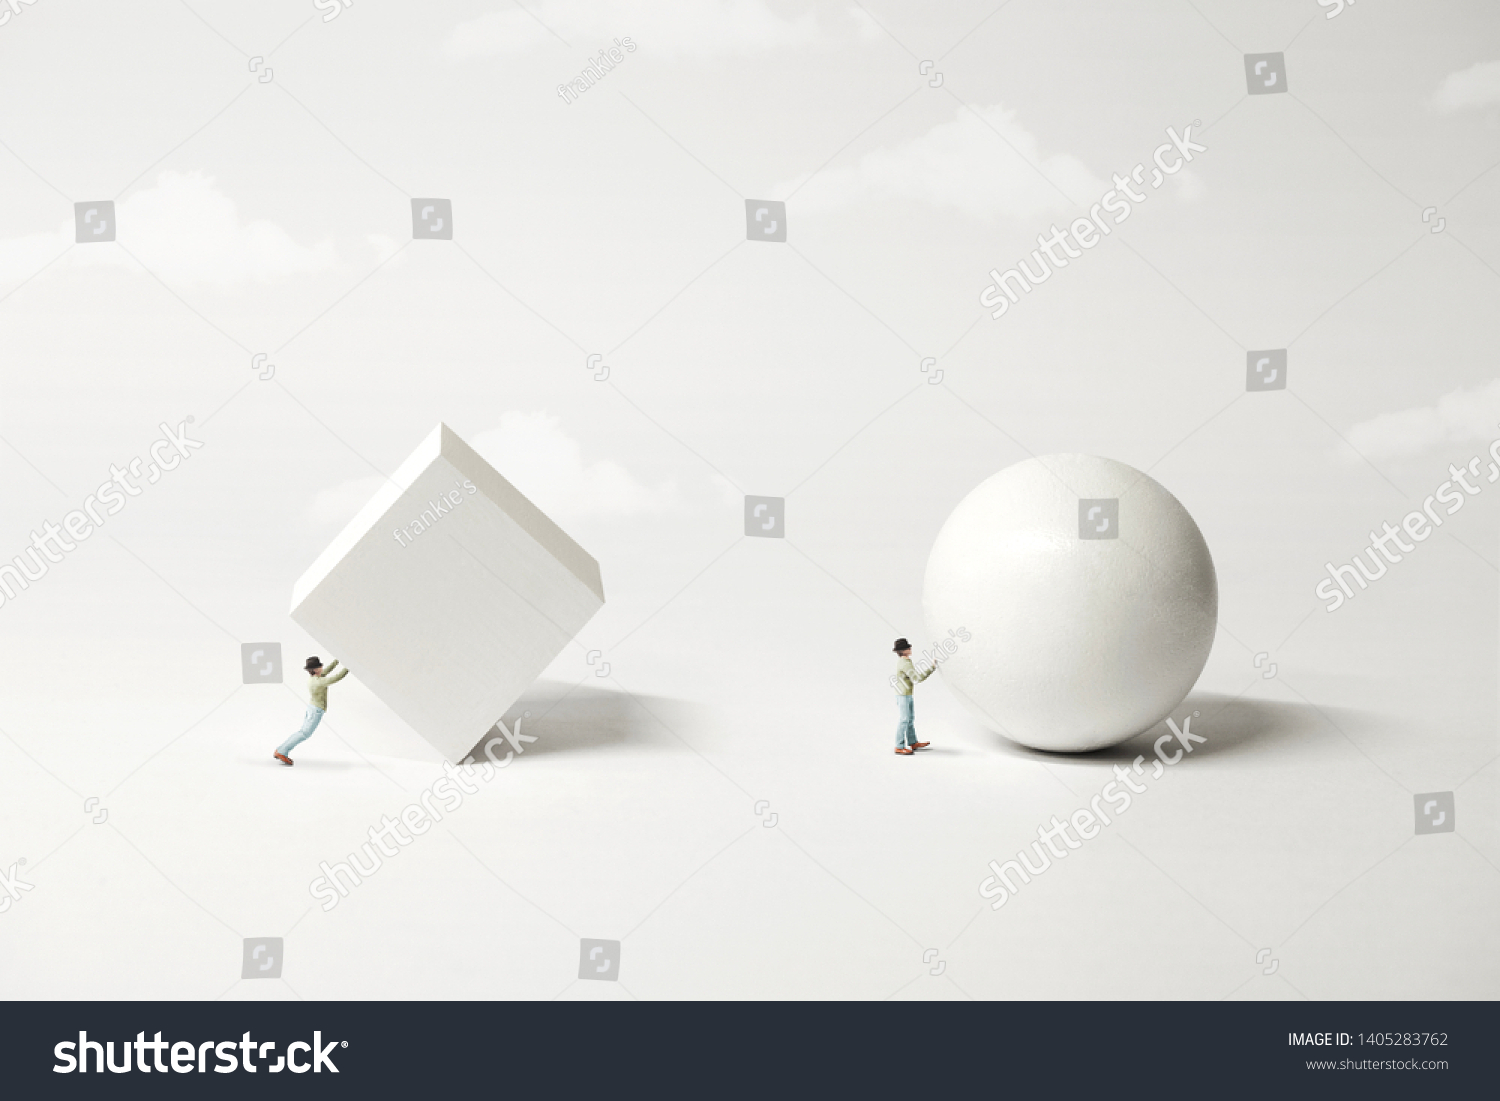 stock-photo-different-strategy-comparison-the-easyest-the-better-surreal-minimal-concept-1405283762